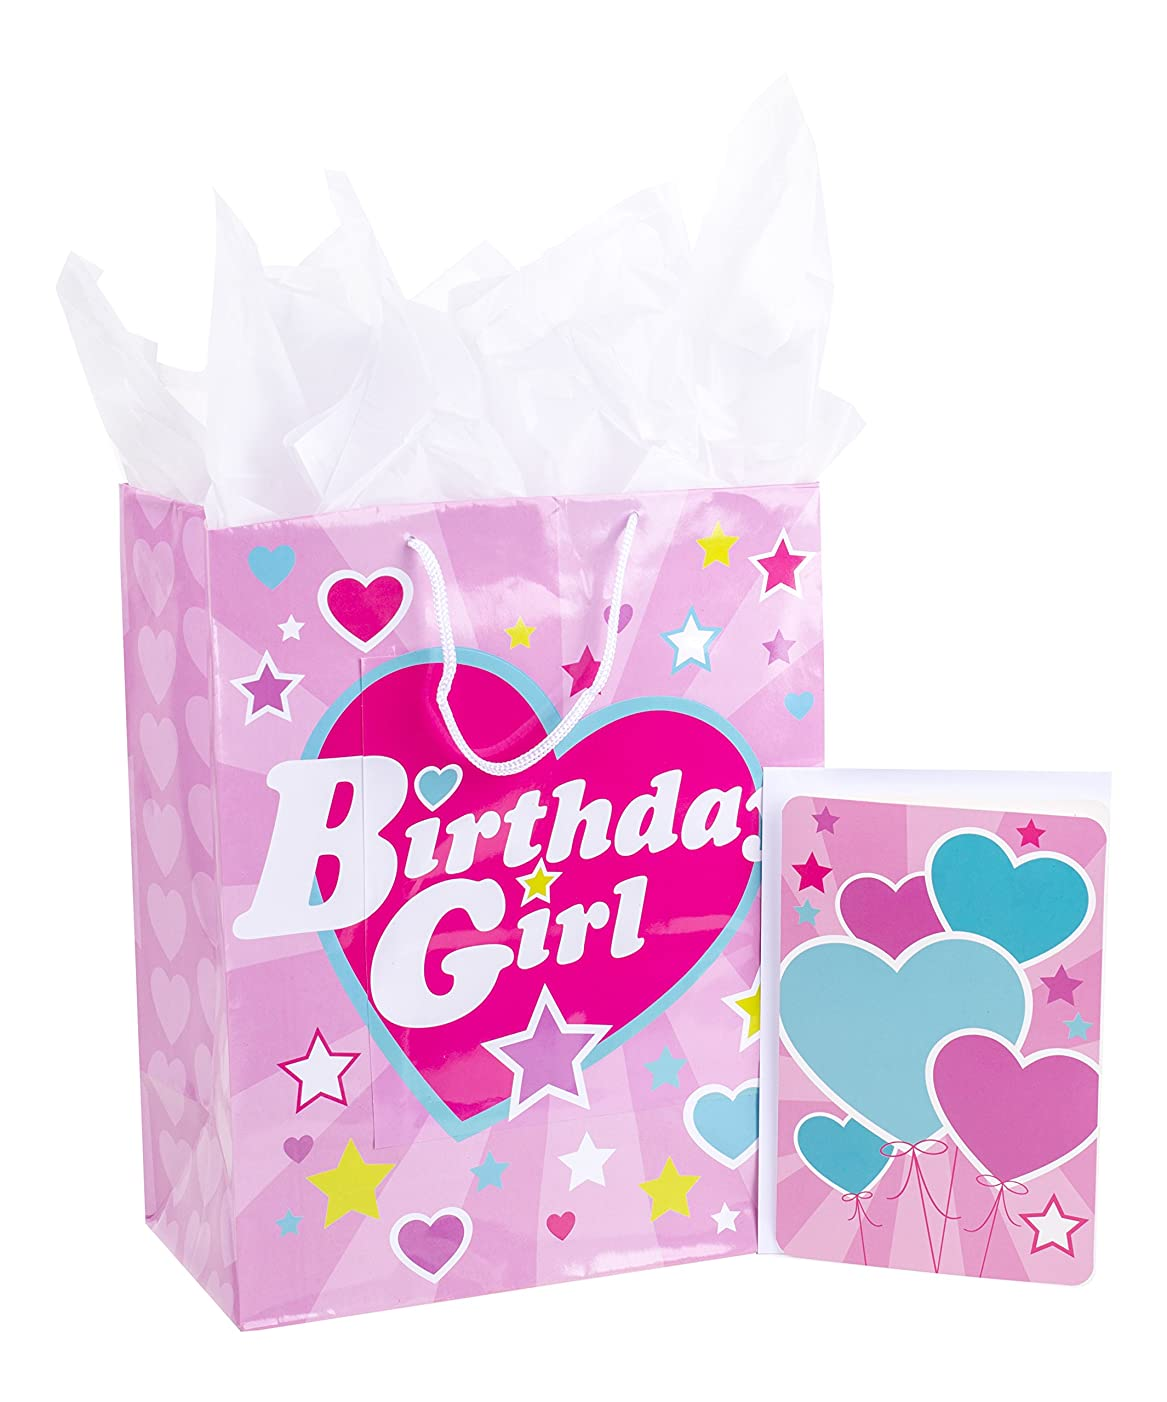 Hallmark Large Gift Bag with Birthday Card and Tissue Paper (Pink Heart, Birthday Girl)